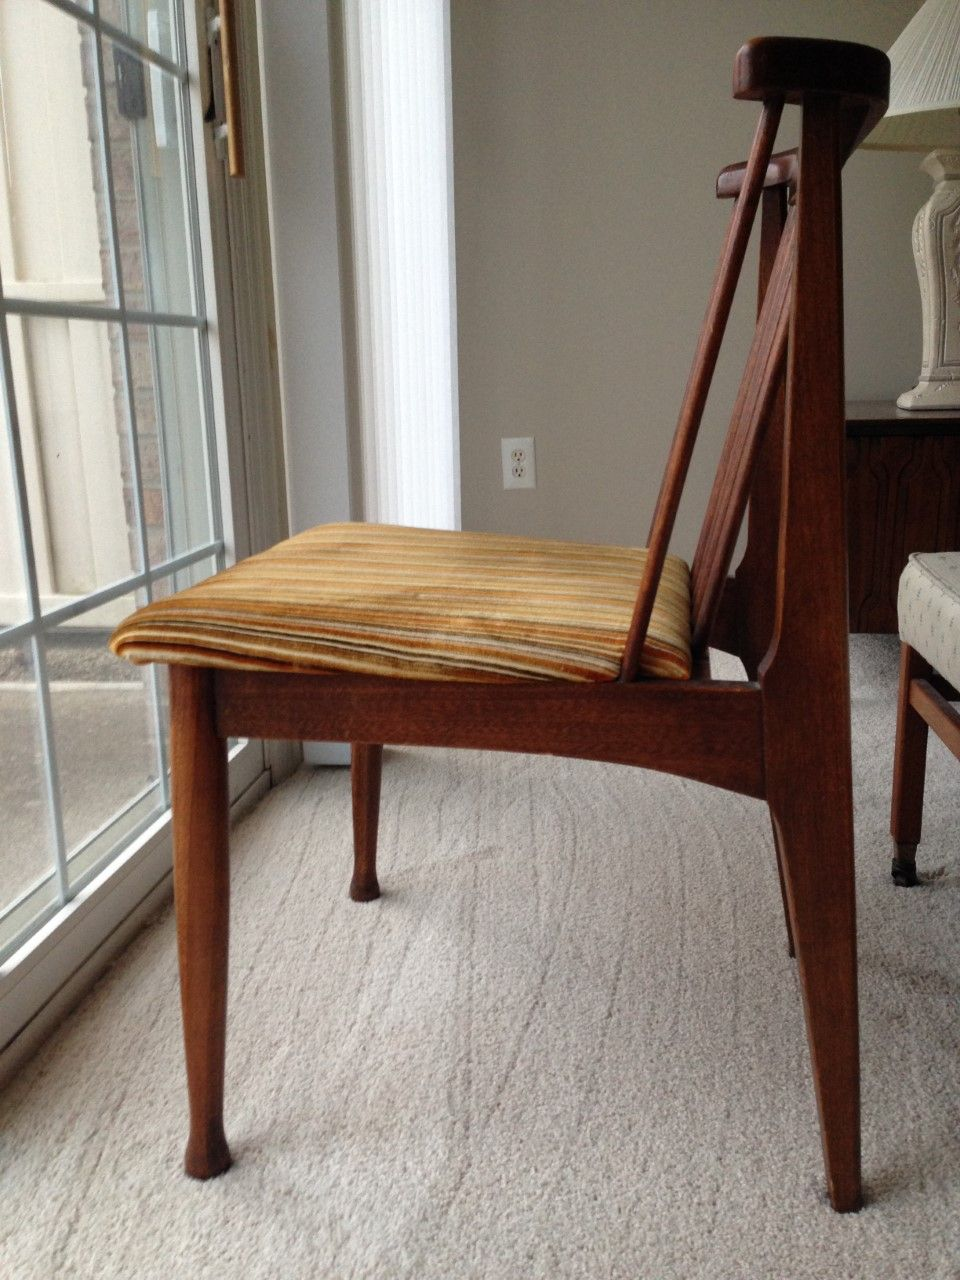 I Bought 6 Matching Dining Chairs And Matching Wooden Dining Table Glamorous Craigslist Nj Dining Room Set Review